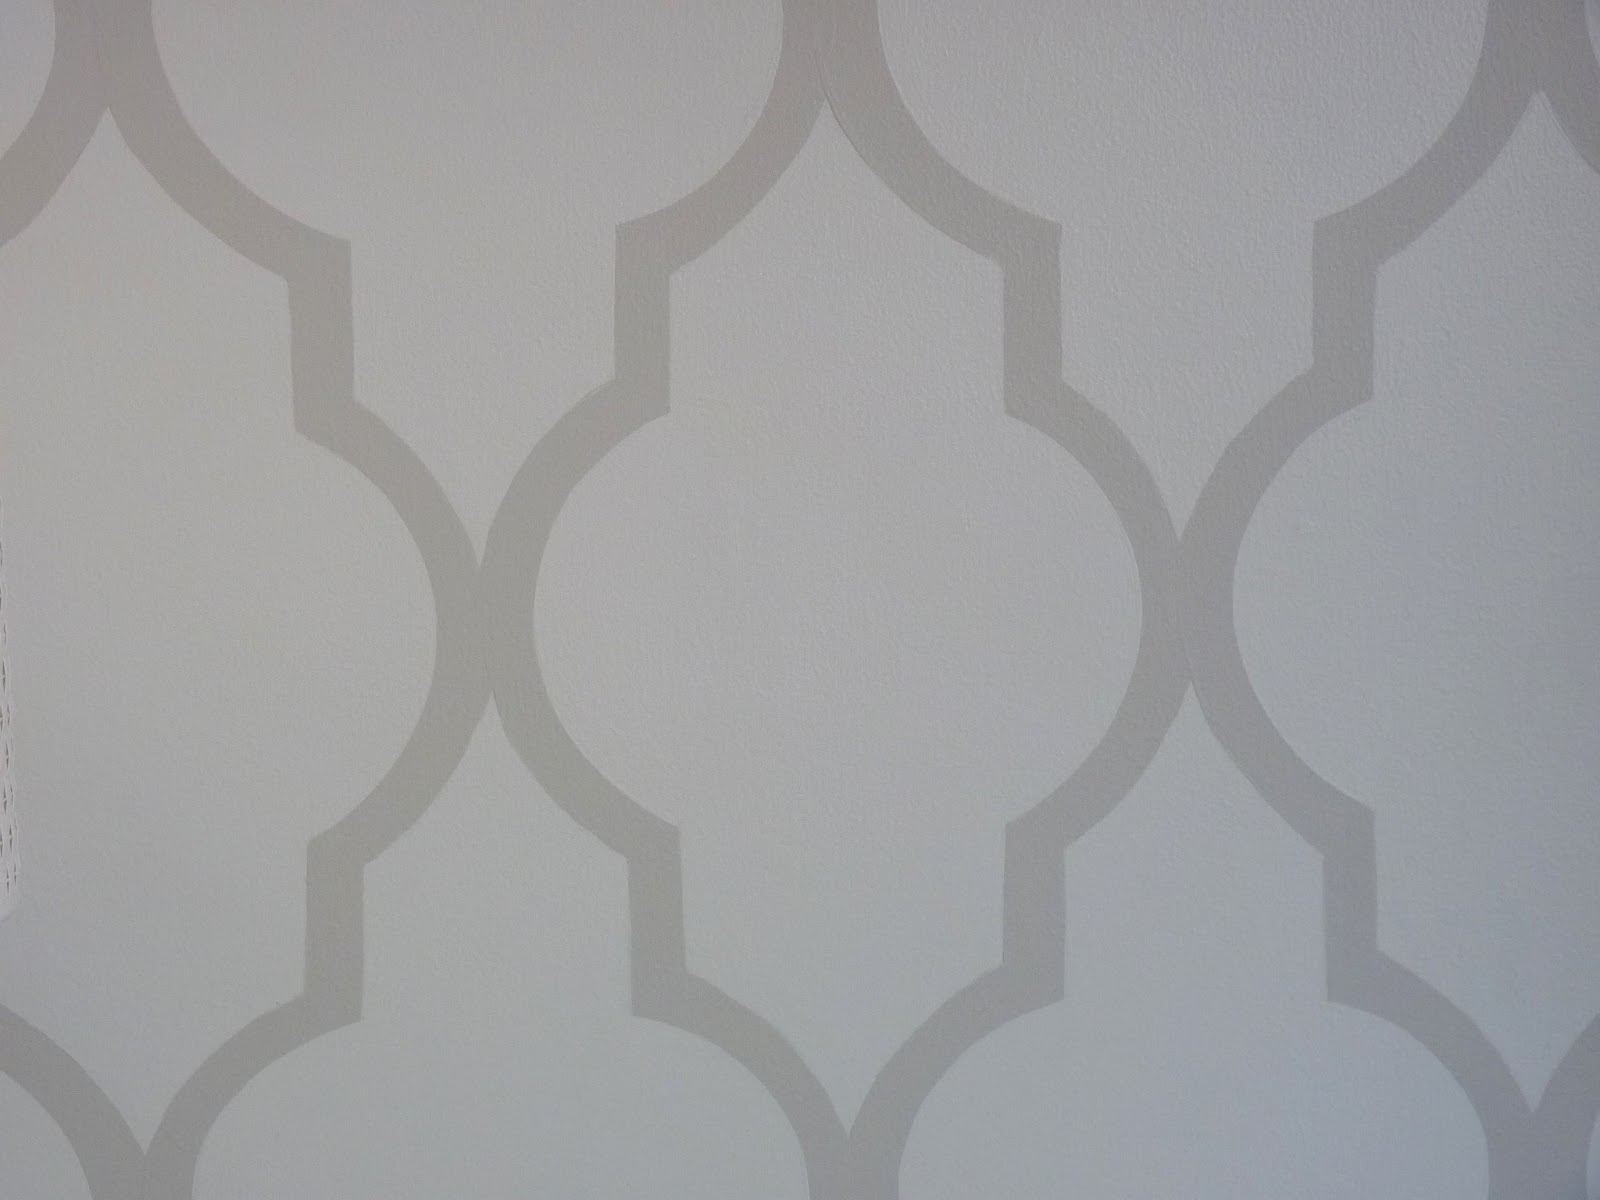 moroccan shapes templates - free printable moroccan stencil joy studio design